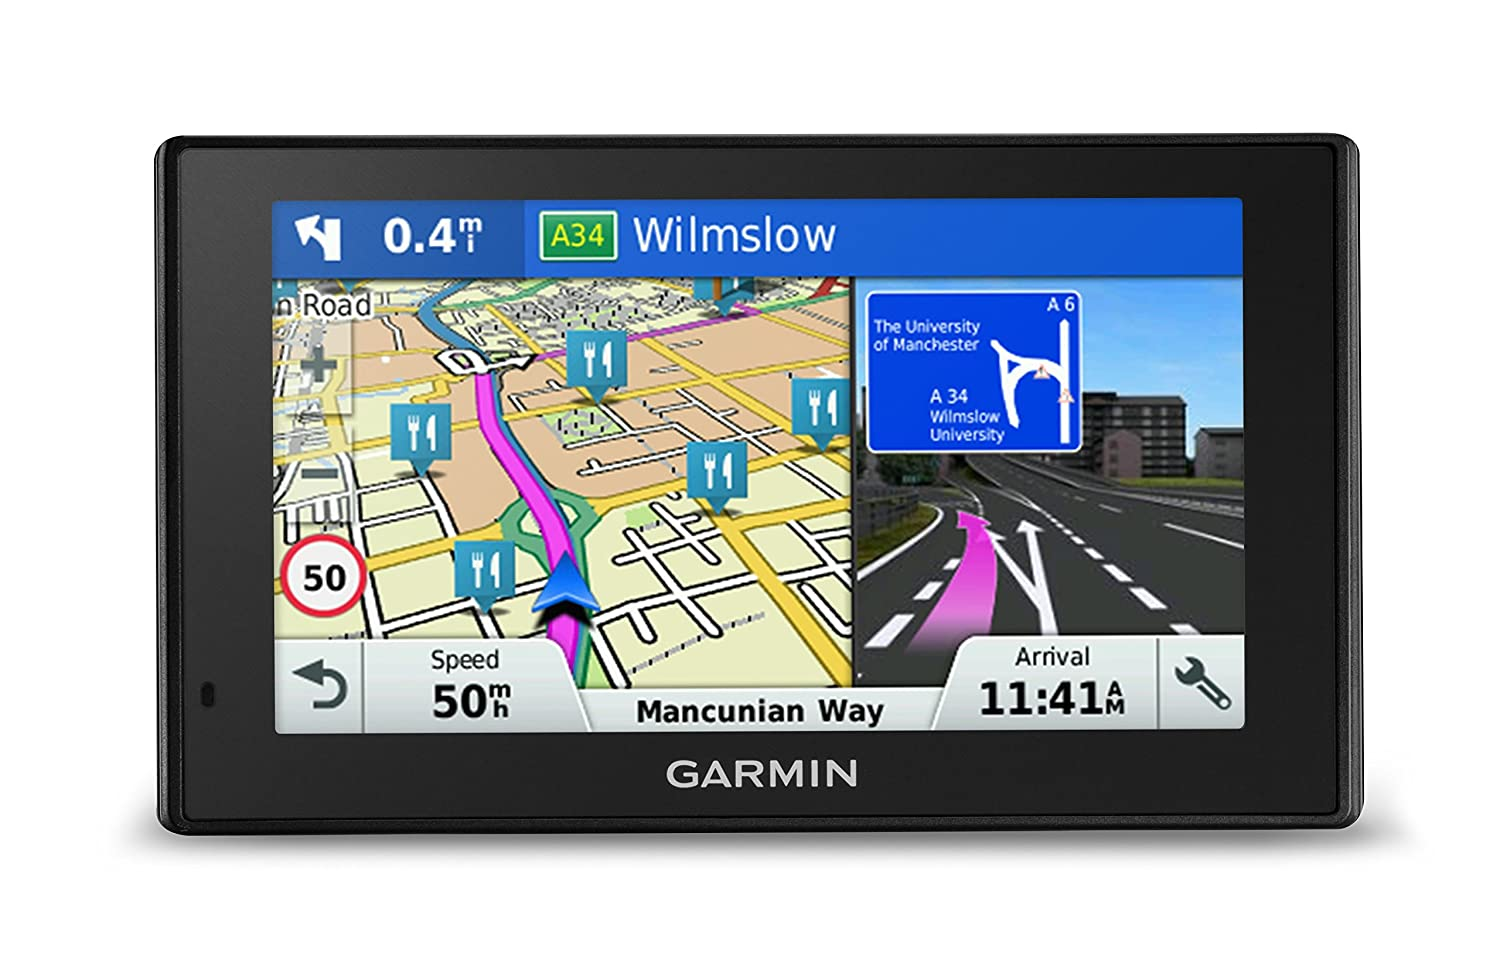 Garmin 010-01539-2C DriveSmart 50LM Satellite Navigation with Western Europe Lifetime Maps - 5 inch, Black